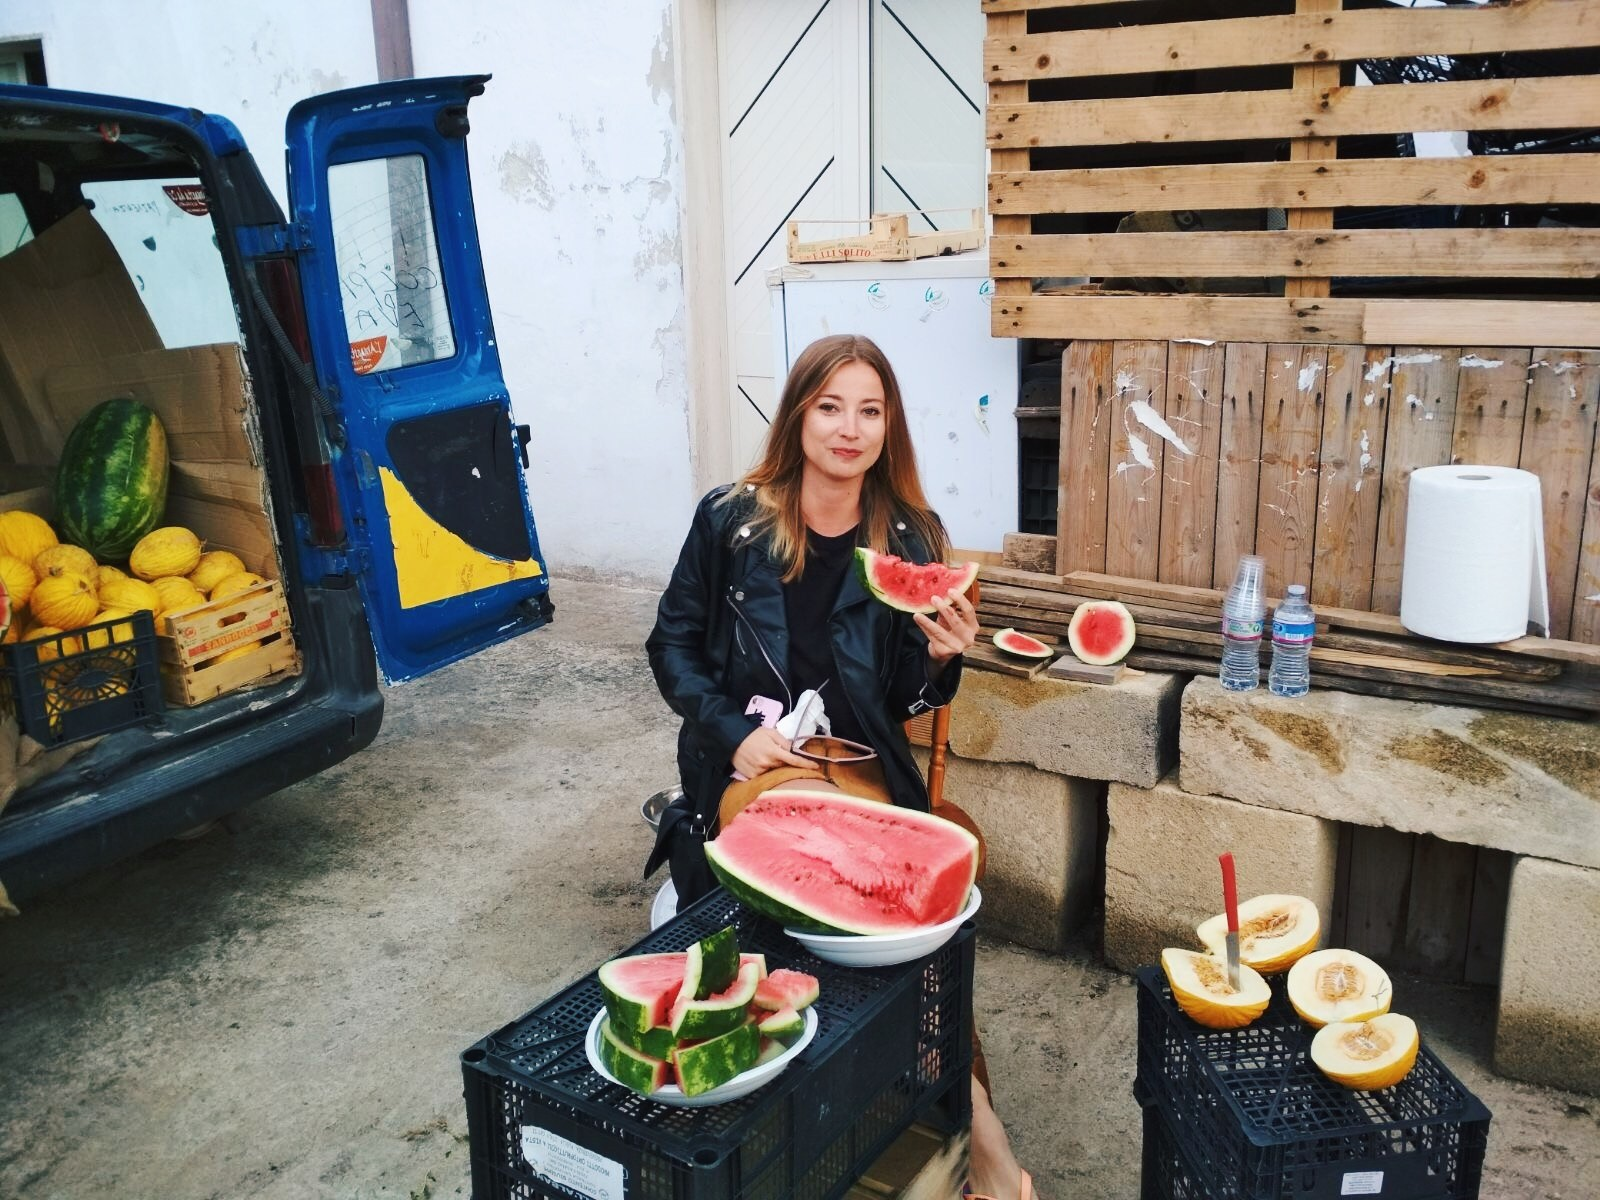 Me eating watermelons in Torre Lapillo in Italy